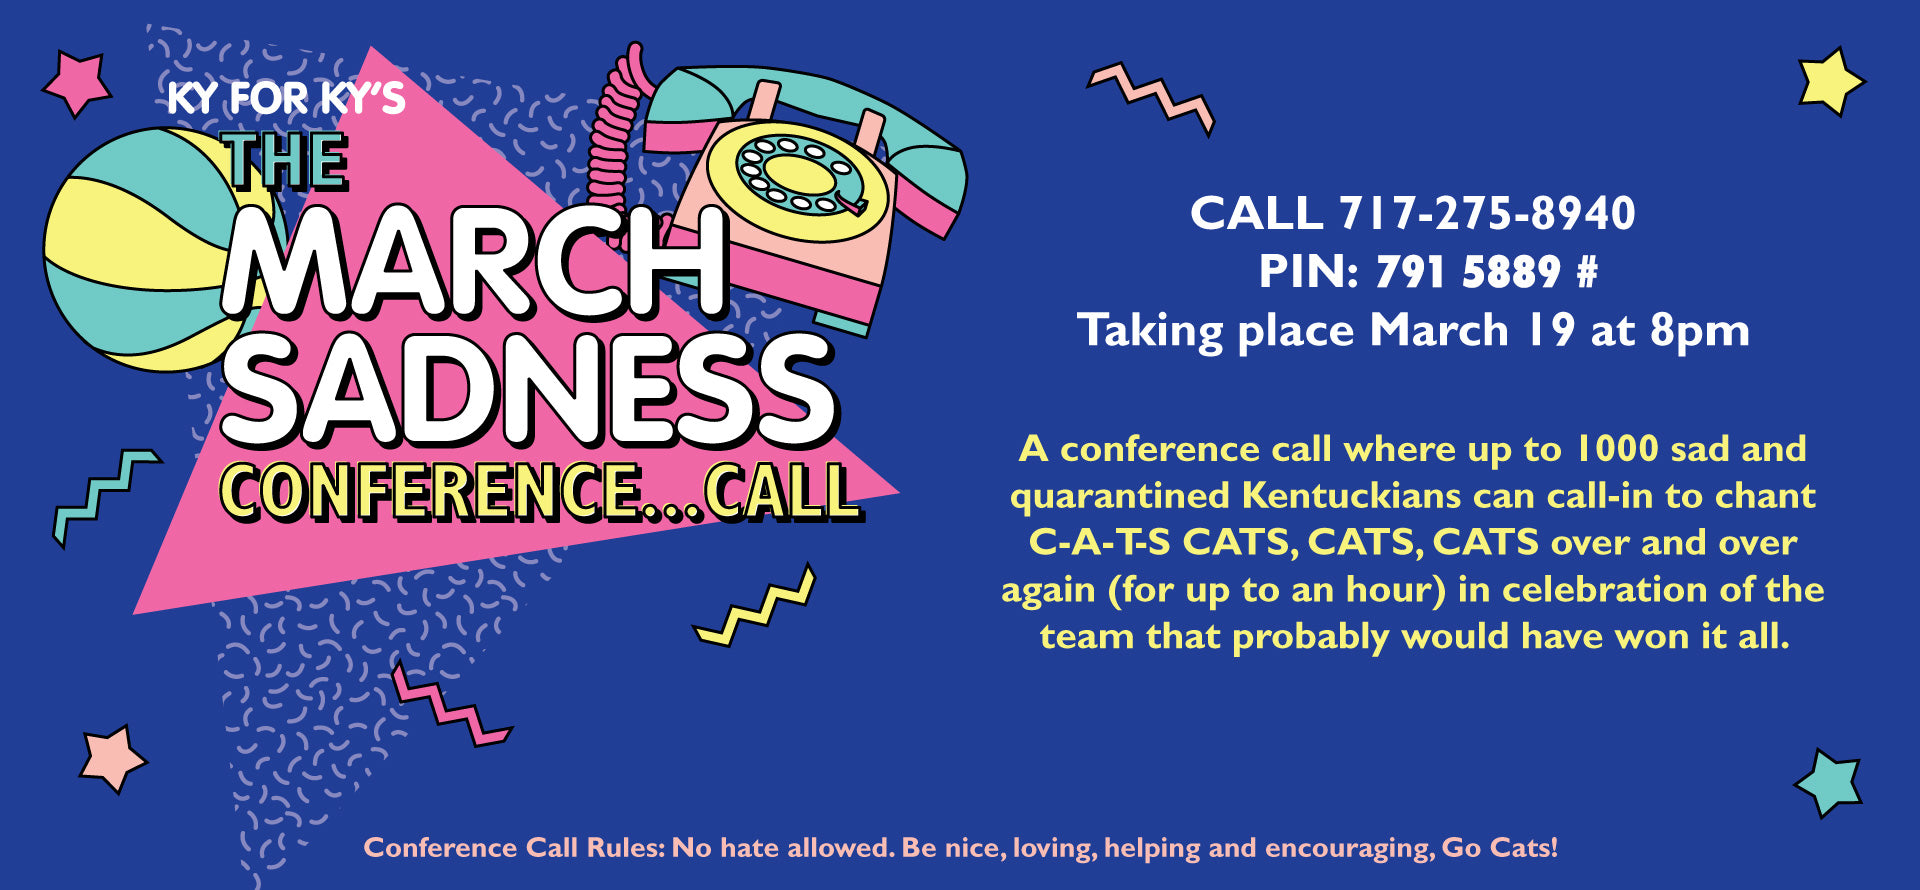 The March Sadness Conference Call